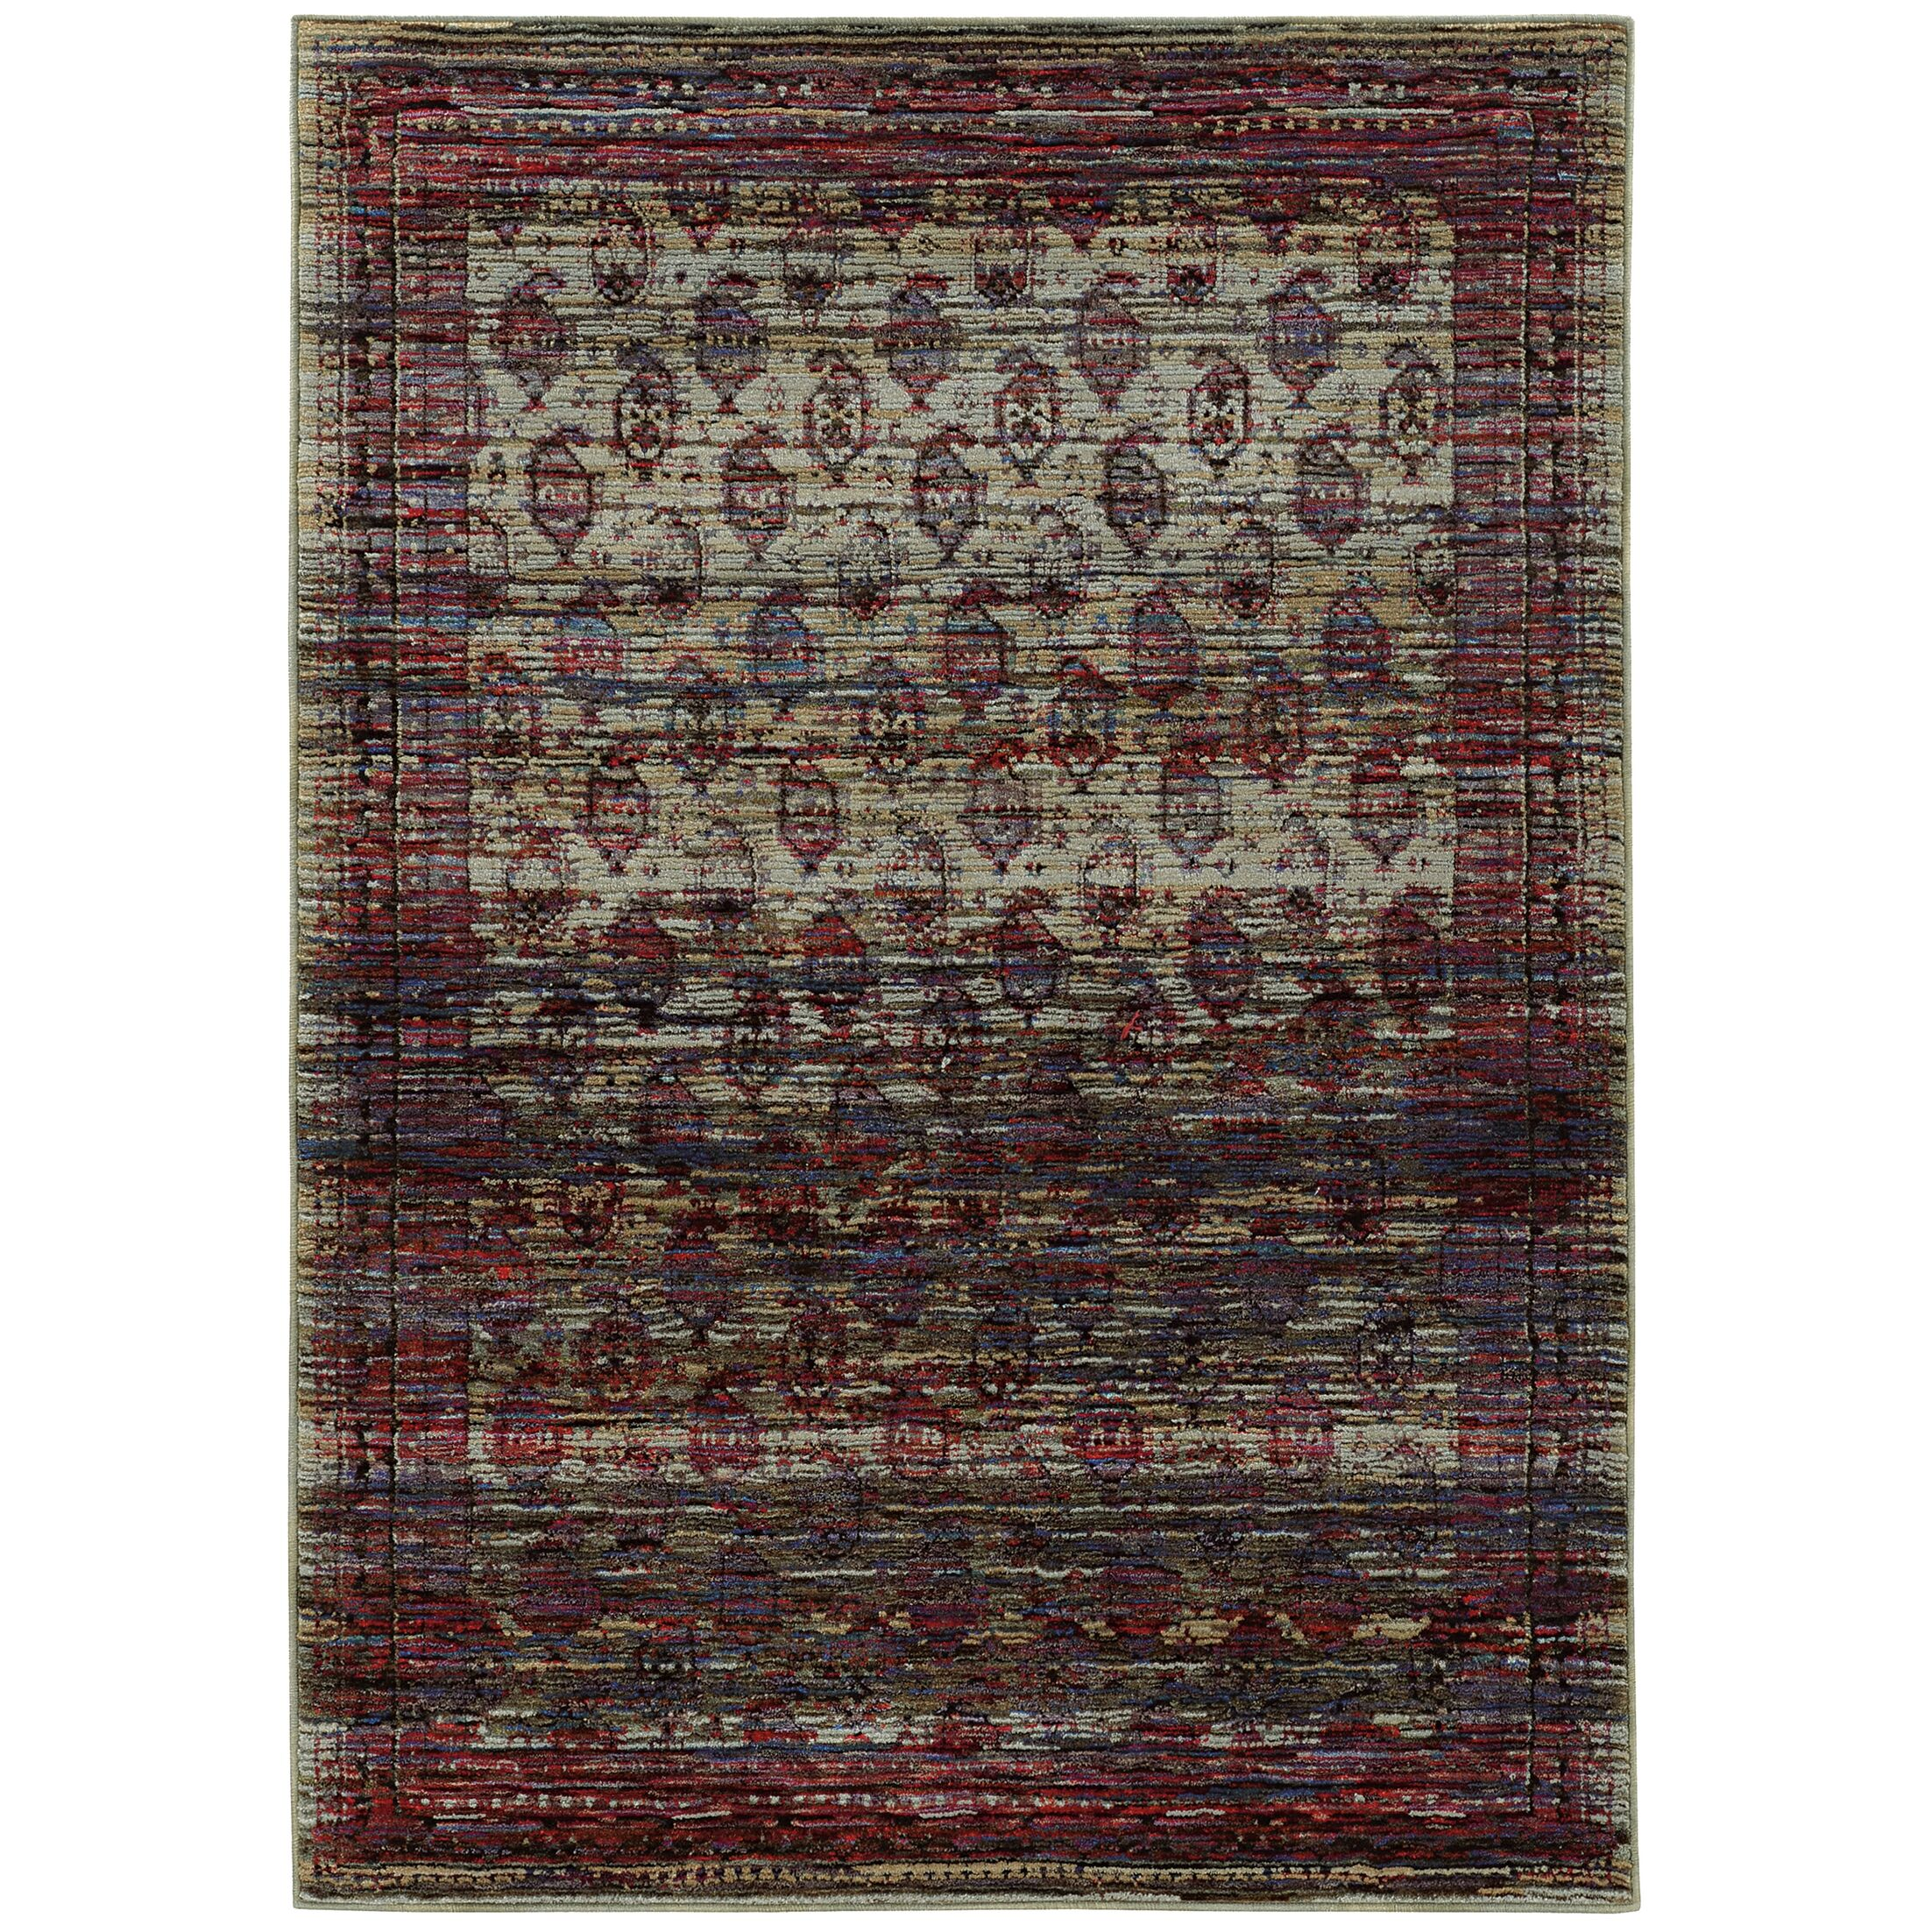 Rosalia Distressed Red Area Rug Rug Size: Rectangle 8'6